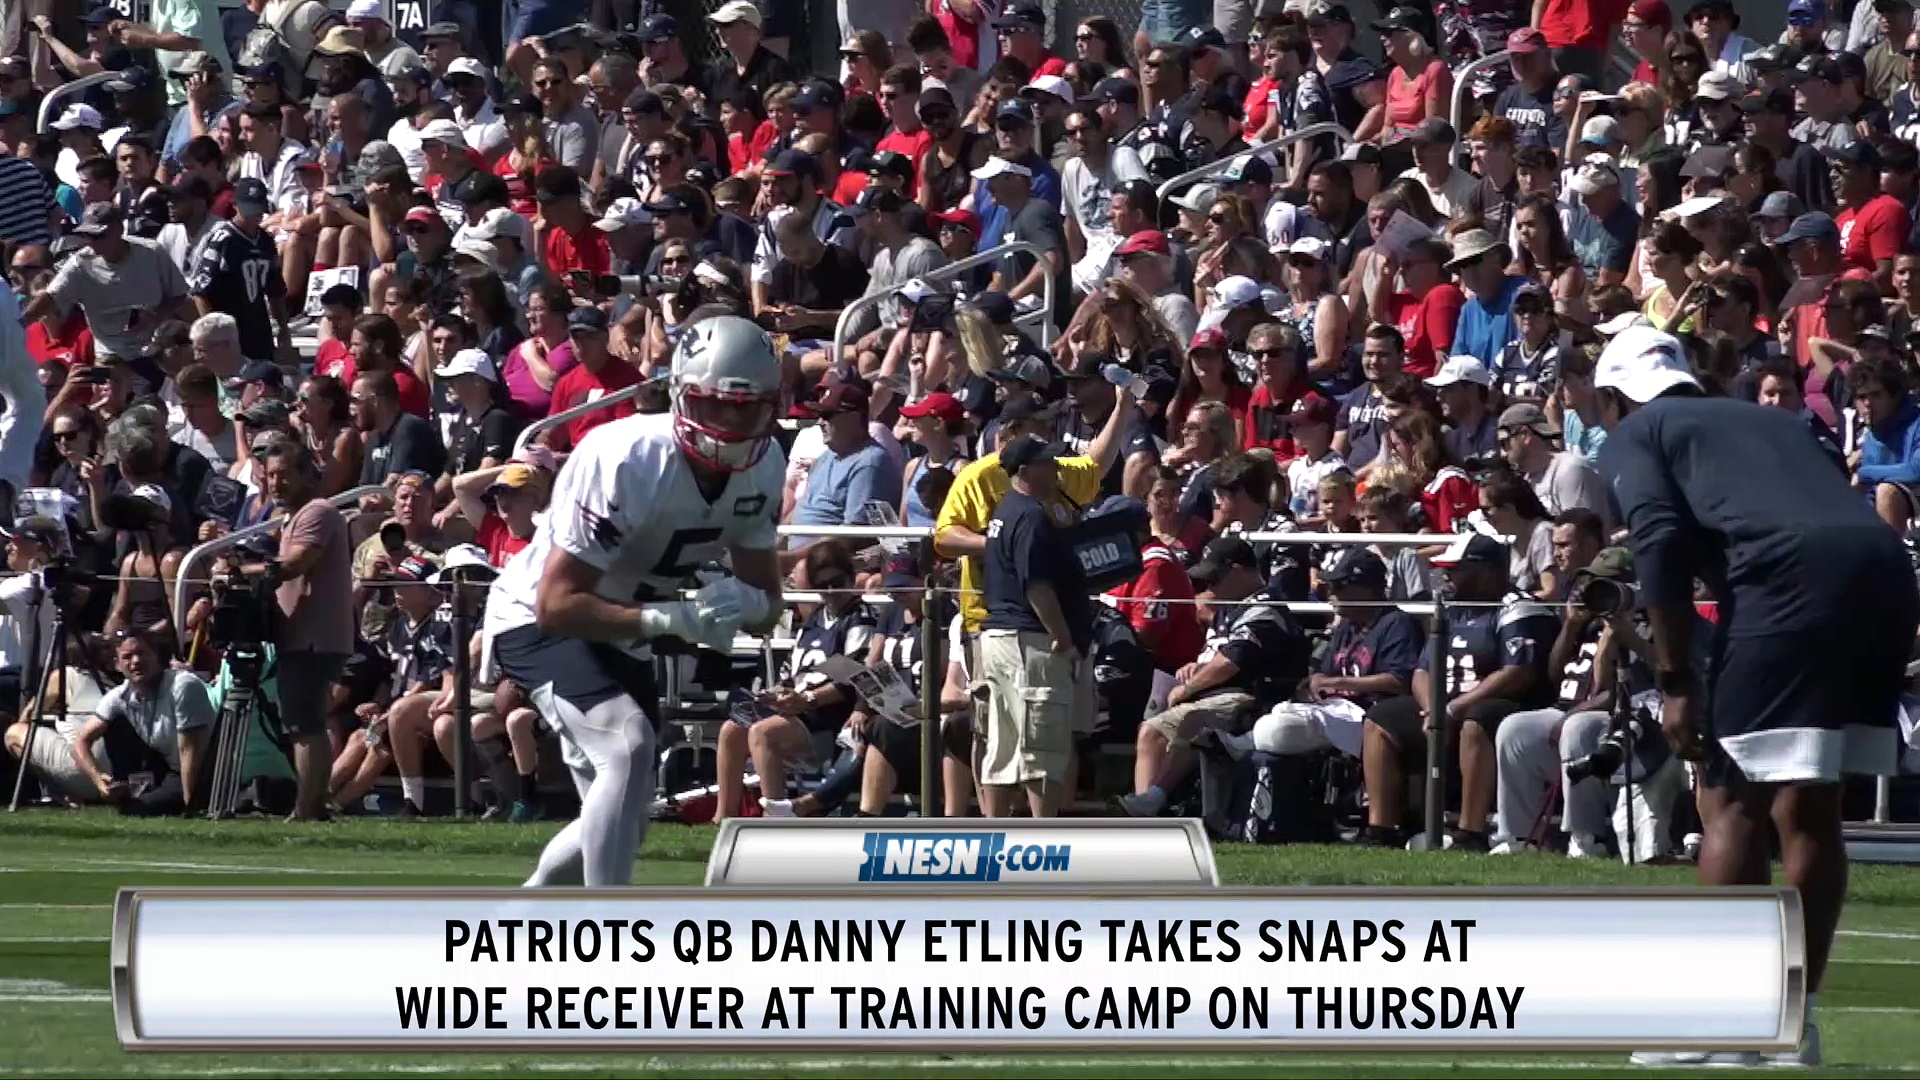 Patriots QB Danny Etling Takes Snaps At Wide Receiver In Training Camp